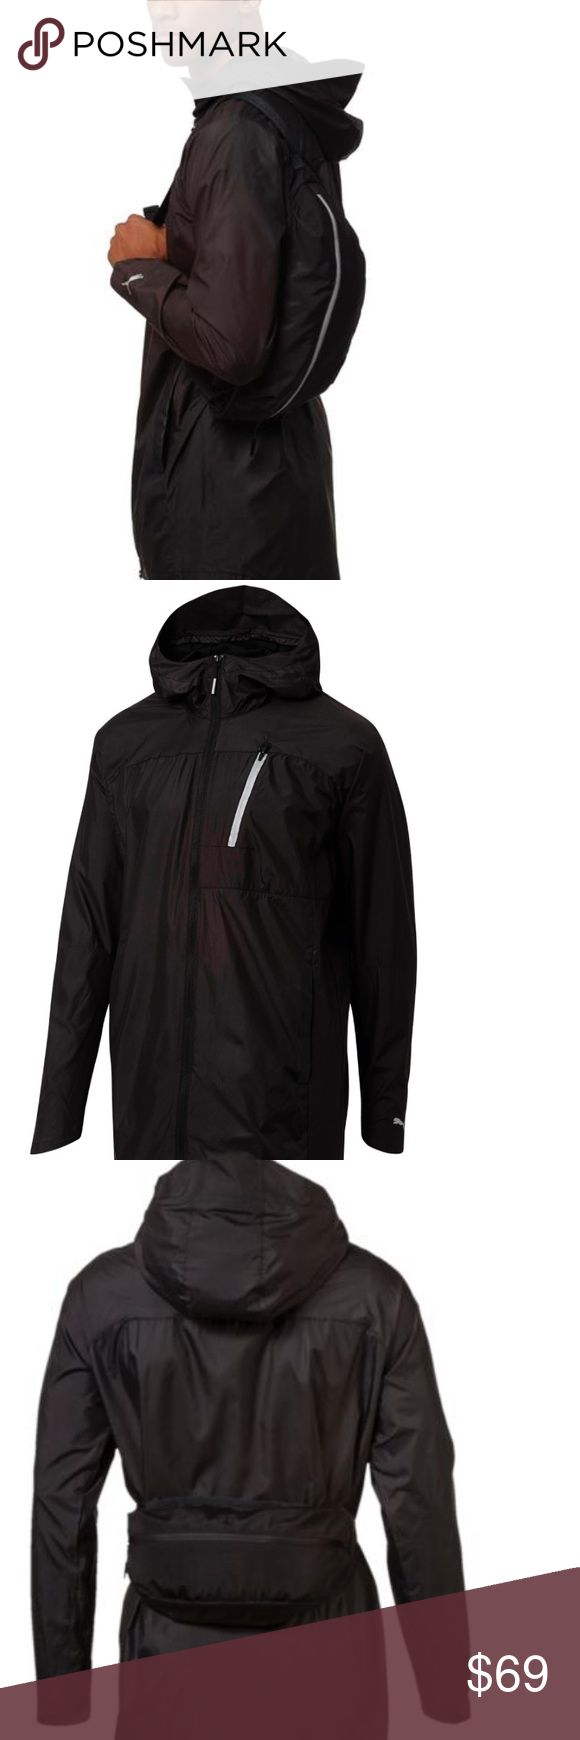 """NWT PUMA EVOLUTION LAB JACKPACK WINDBREAKER Awesome windbreaker by Puma.  Fits inside, multi use, fanny pack (included) Water resistant  Well made with 3 front, functional, pockets  Mesh lining  Approximately 35""""L in front and 39""""L in back Fantastic! Men's XL  Retails $160, currently on website for $120 Note: Stock pictures shown for reference. Same item, different color. The item being listed is silver and black.  Comes from a smoke free home. Bundle & save! Puma Jackets & Coats…"""